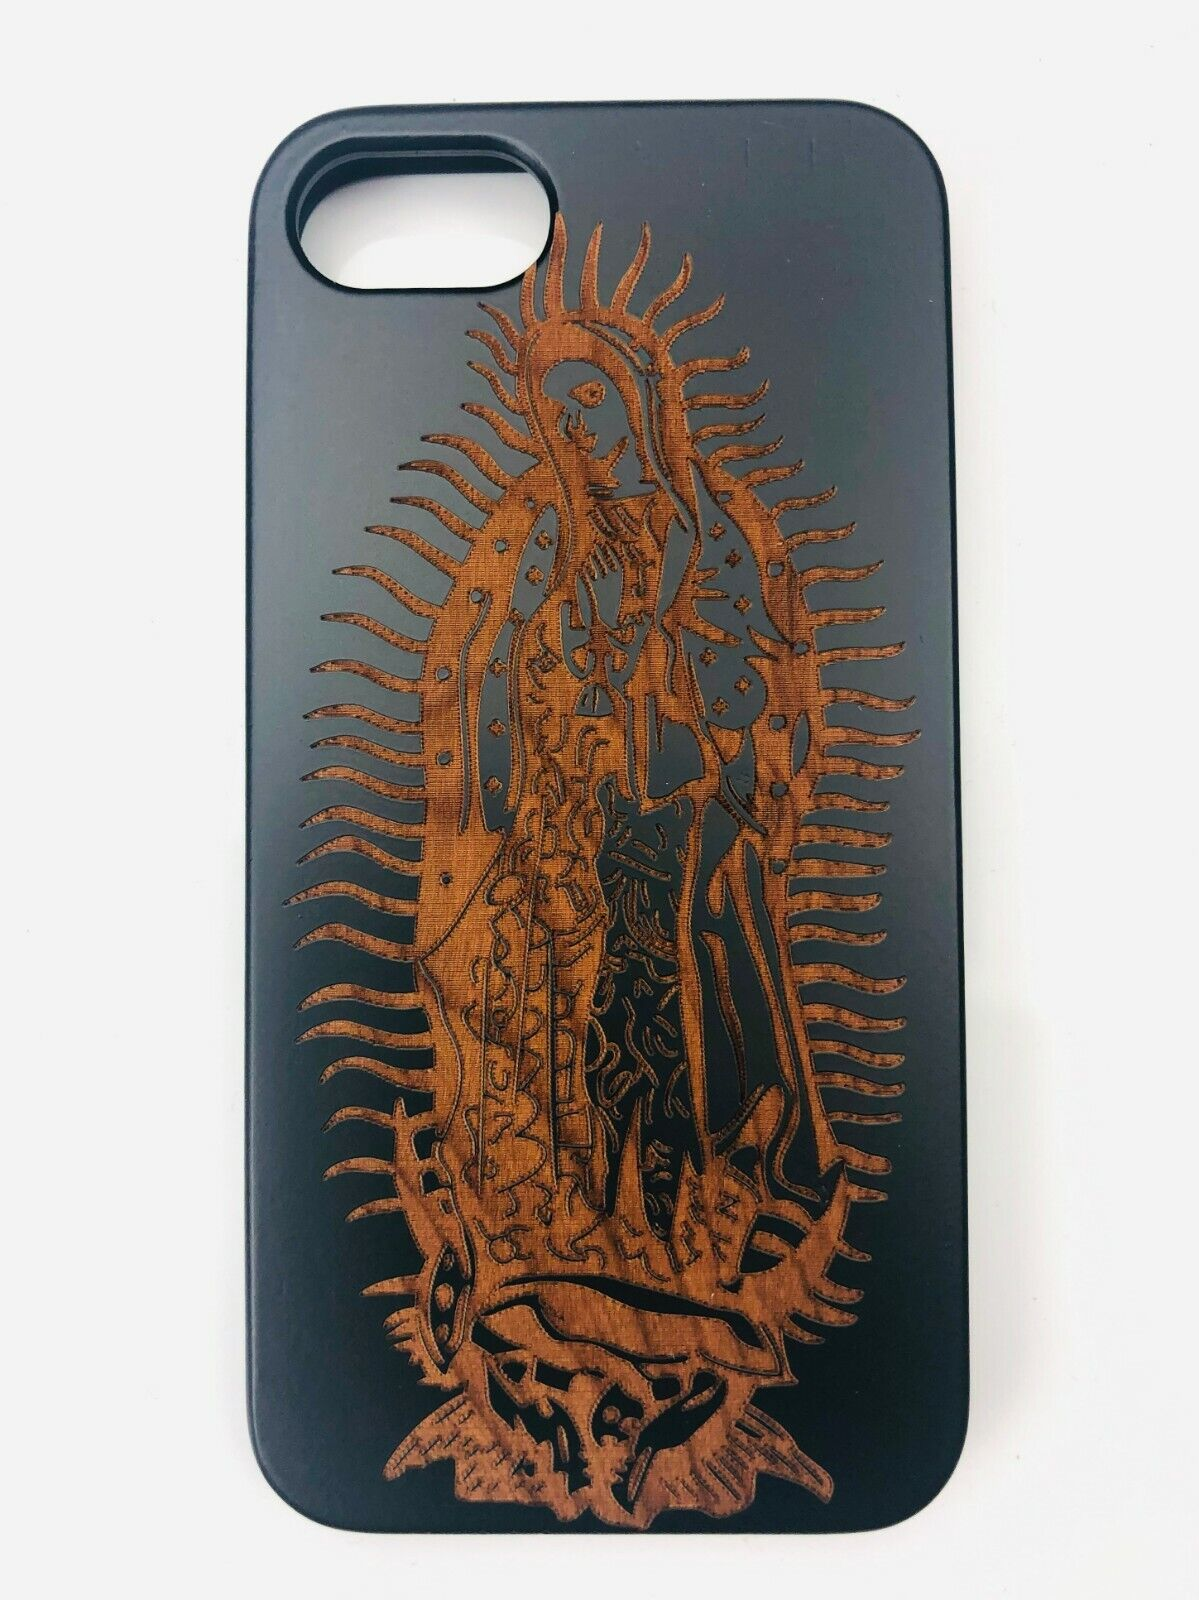 Lady Of Guadalupe Statue Virgin Mary Virgen Maria De Guadalupe Wood Phone Case Cases, Covers & Skins